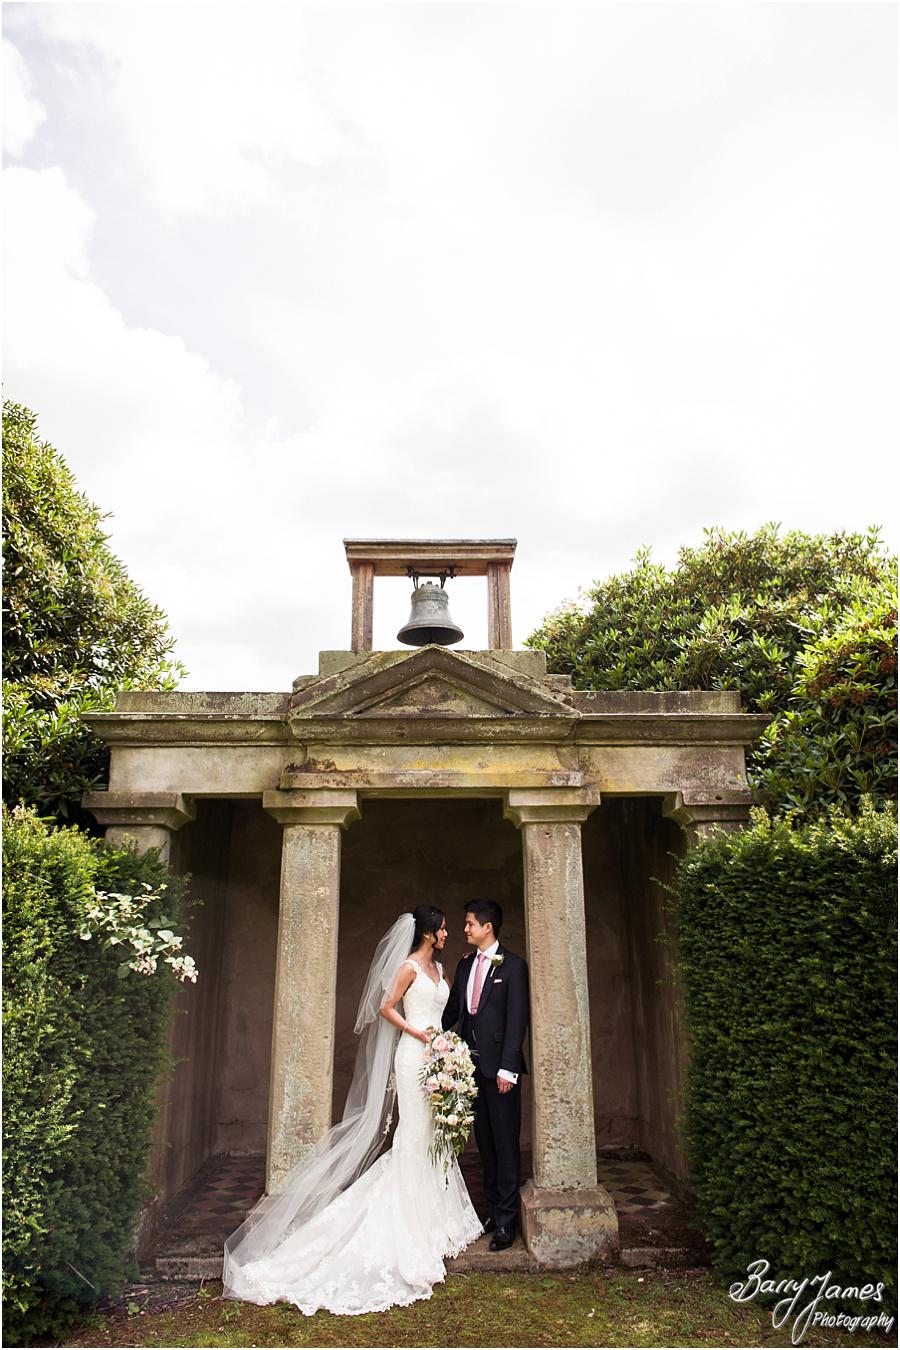 Elegant and natural photographs of the bride and groom around the gardens at Sandon Hall in Stafford by Stafford Wedding Photographer Barry James